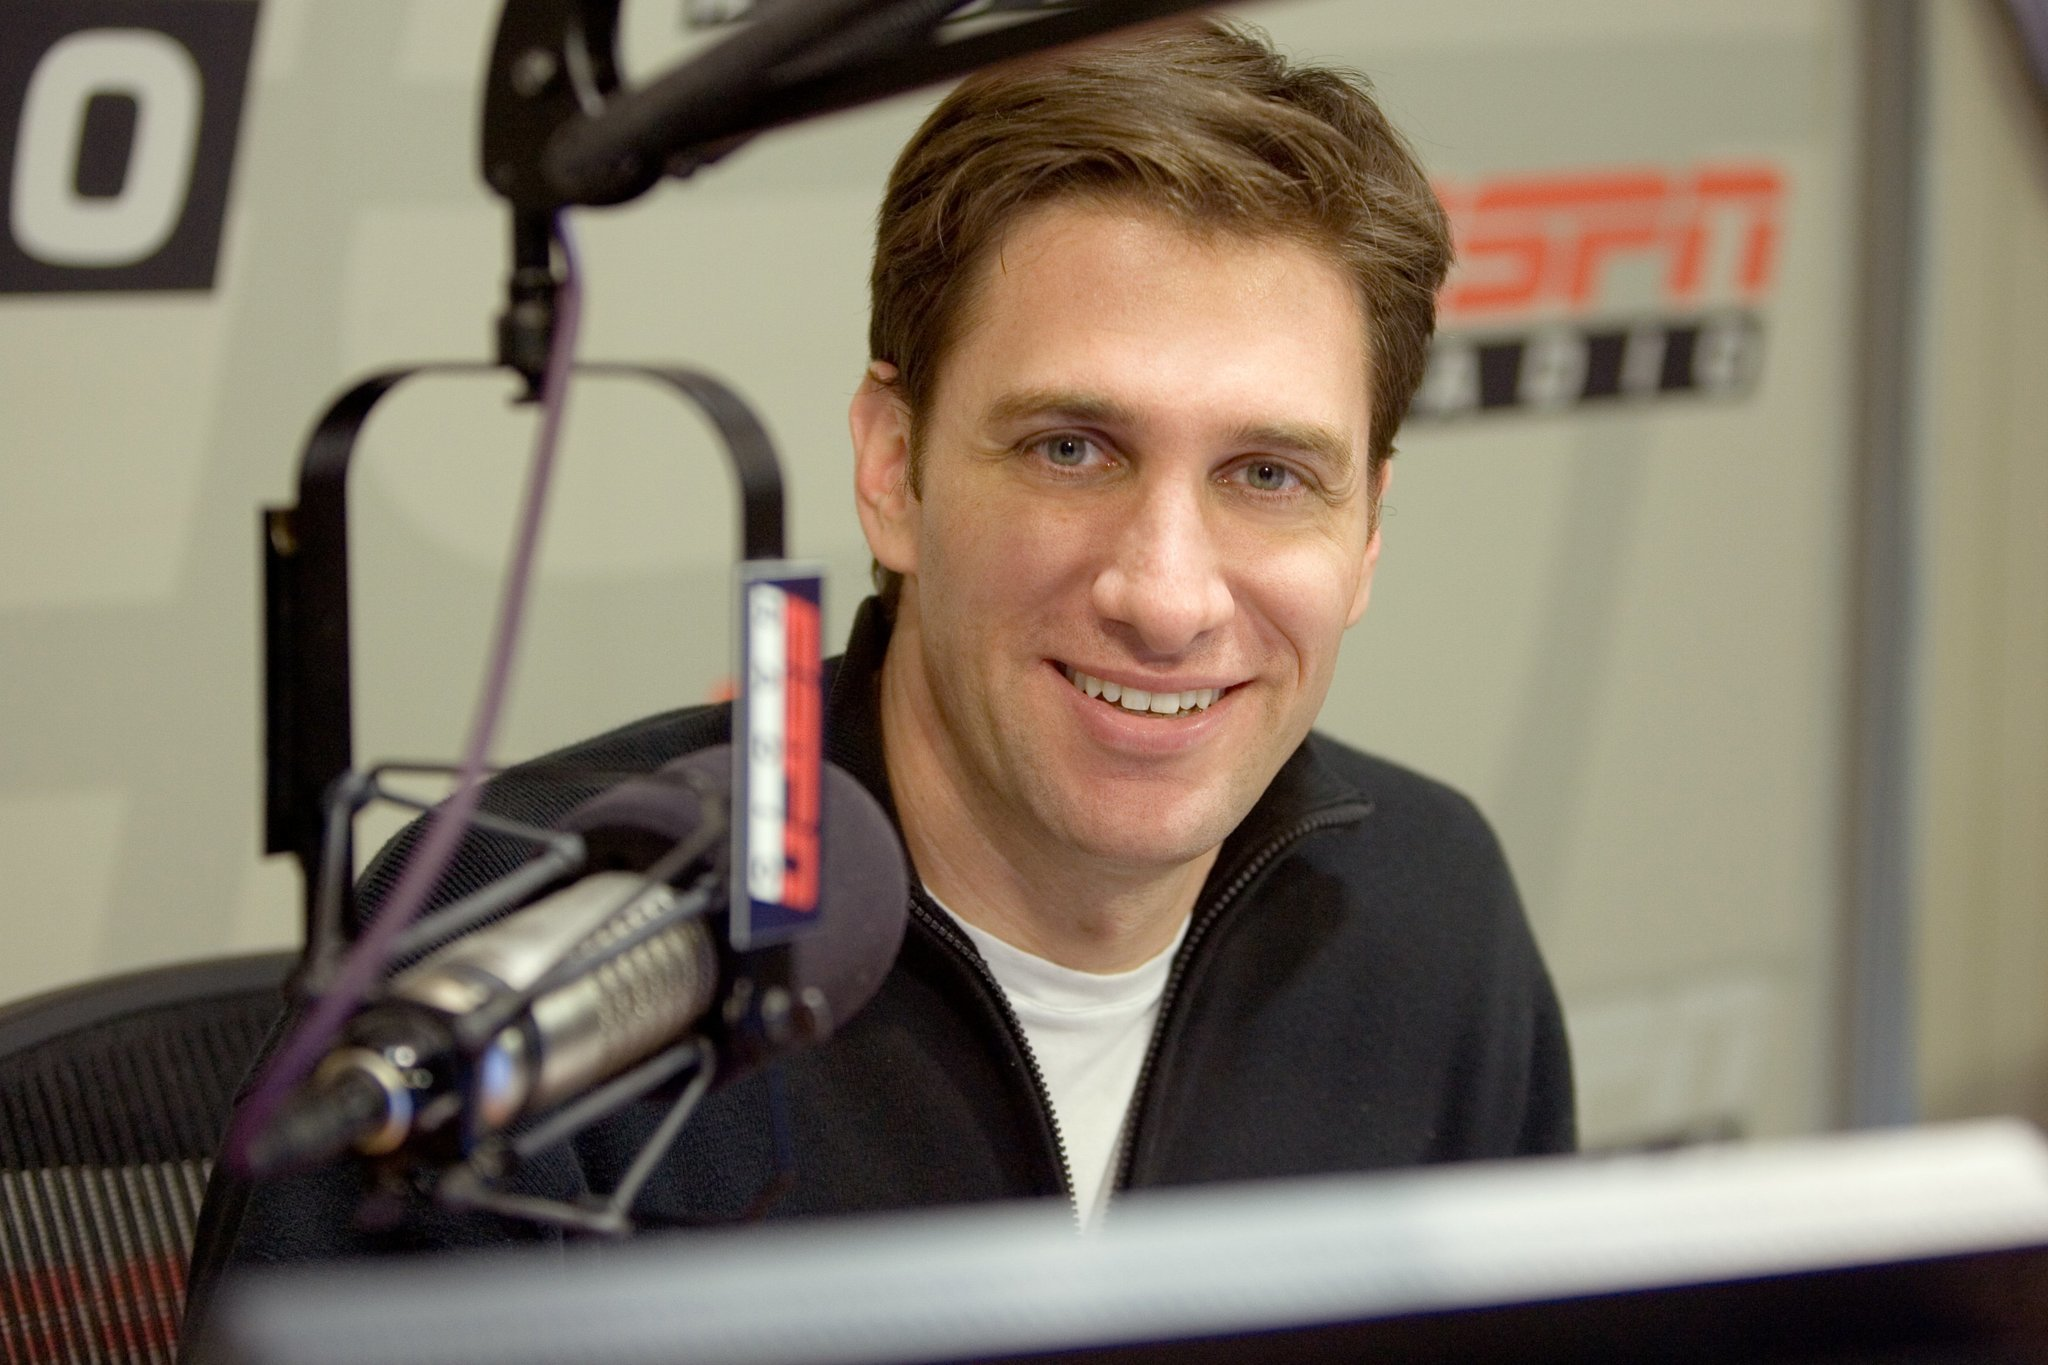 ESPNs Mike Greenberg Clears The Air On Breakup